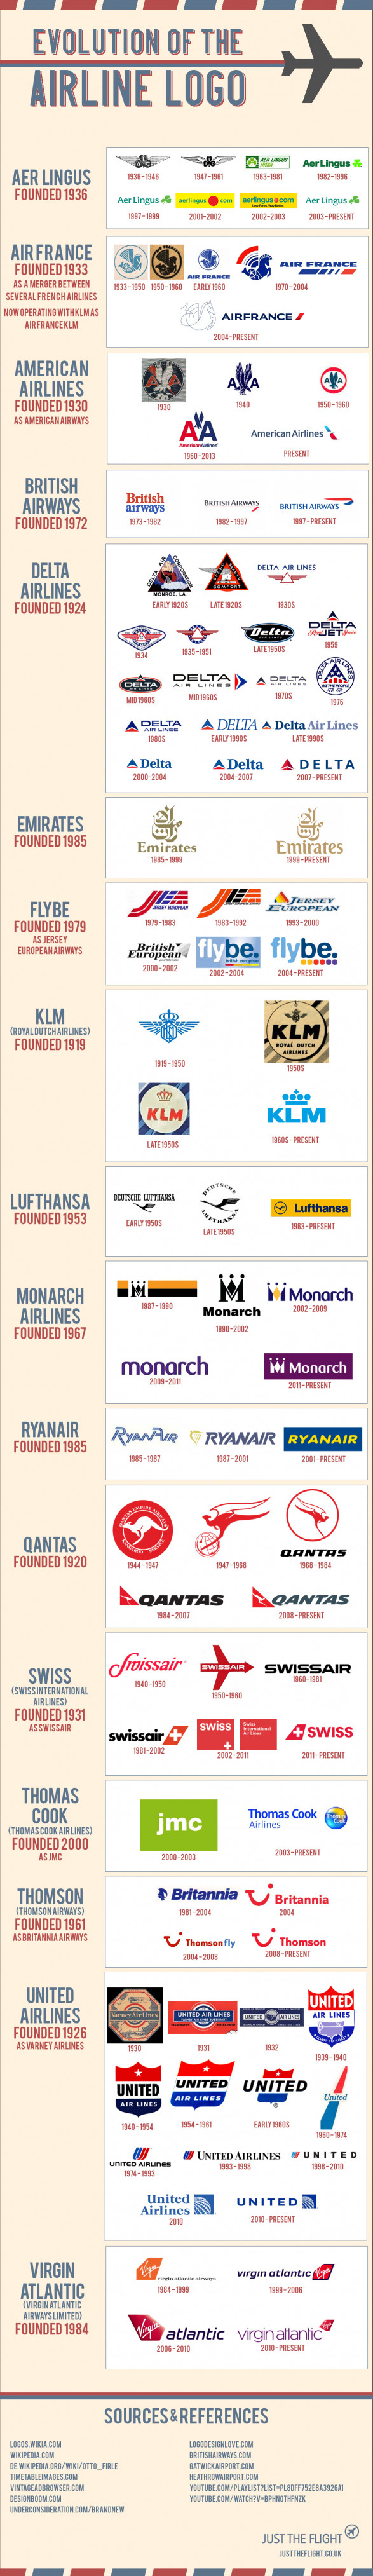 Evolution of the Airline Logo